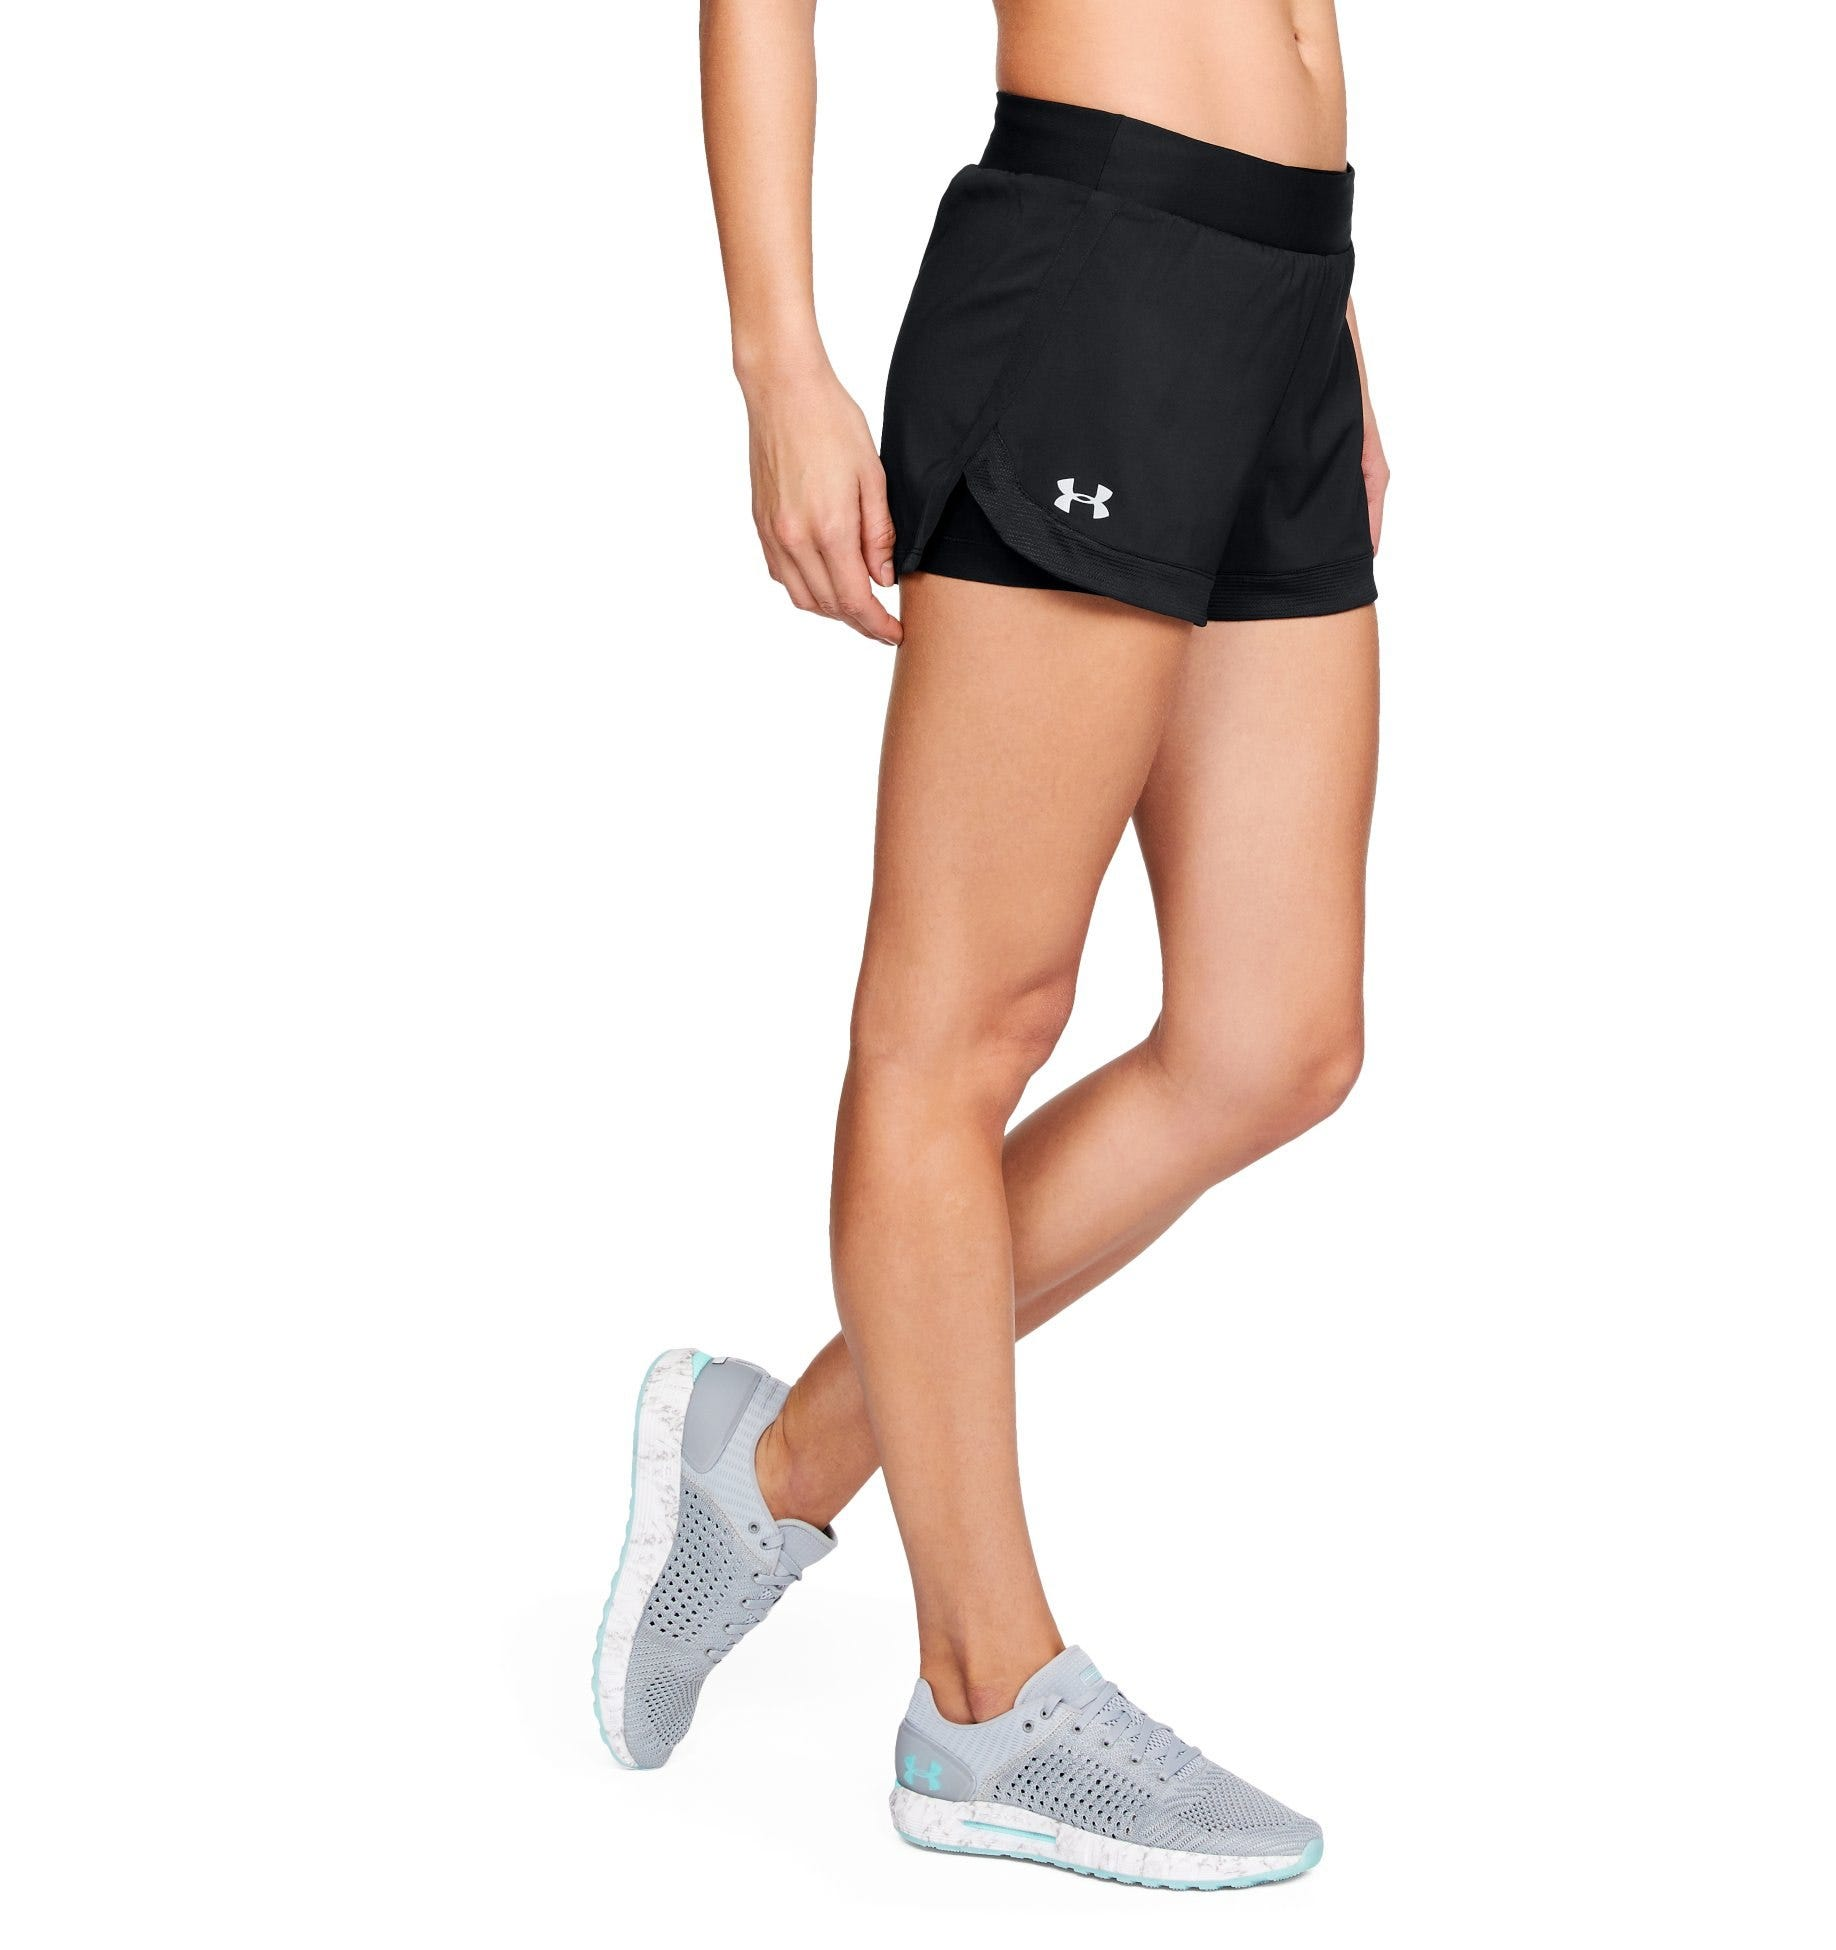 fc0c60380 Best Womens Running Shorts For Working Out   Chafing